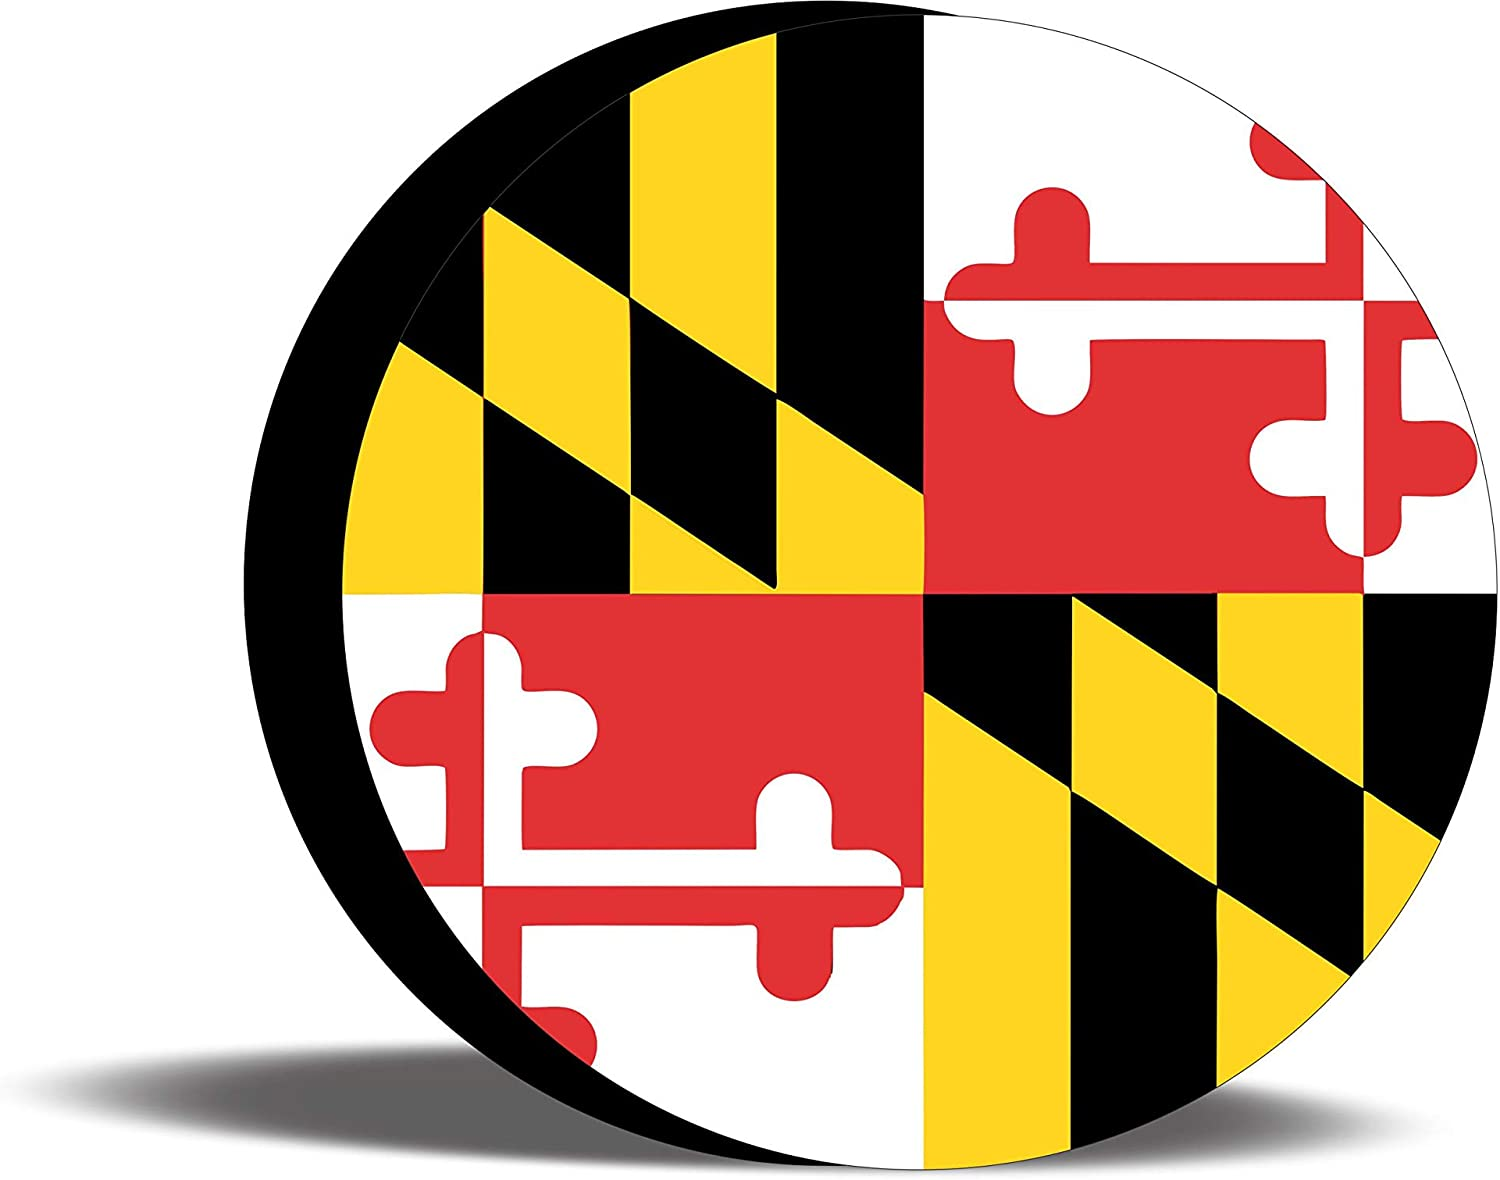 TIRE COVER CENTRAL Maryland Great interest Flag Tire Spare Wheel Cover Department store Select